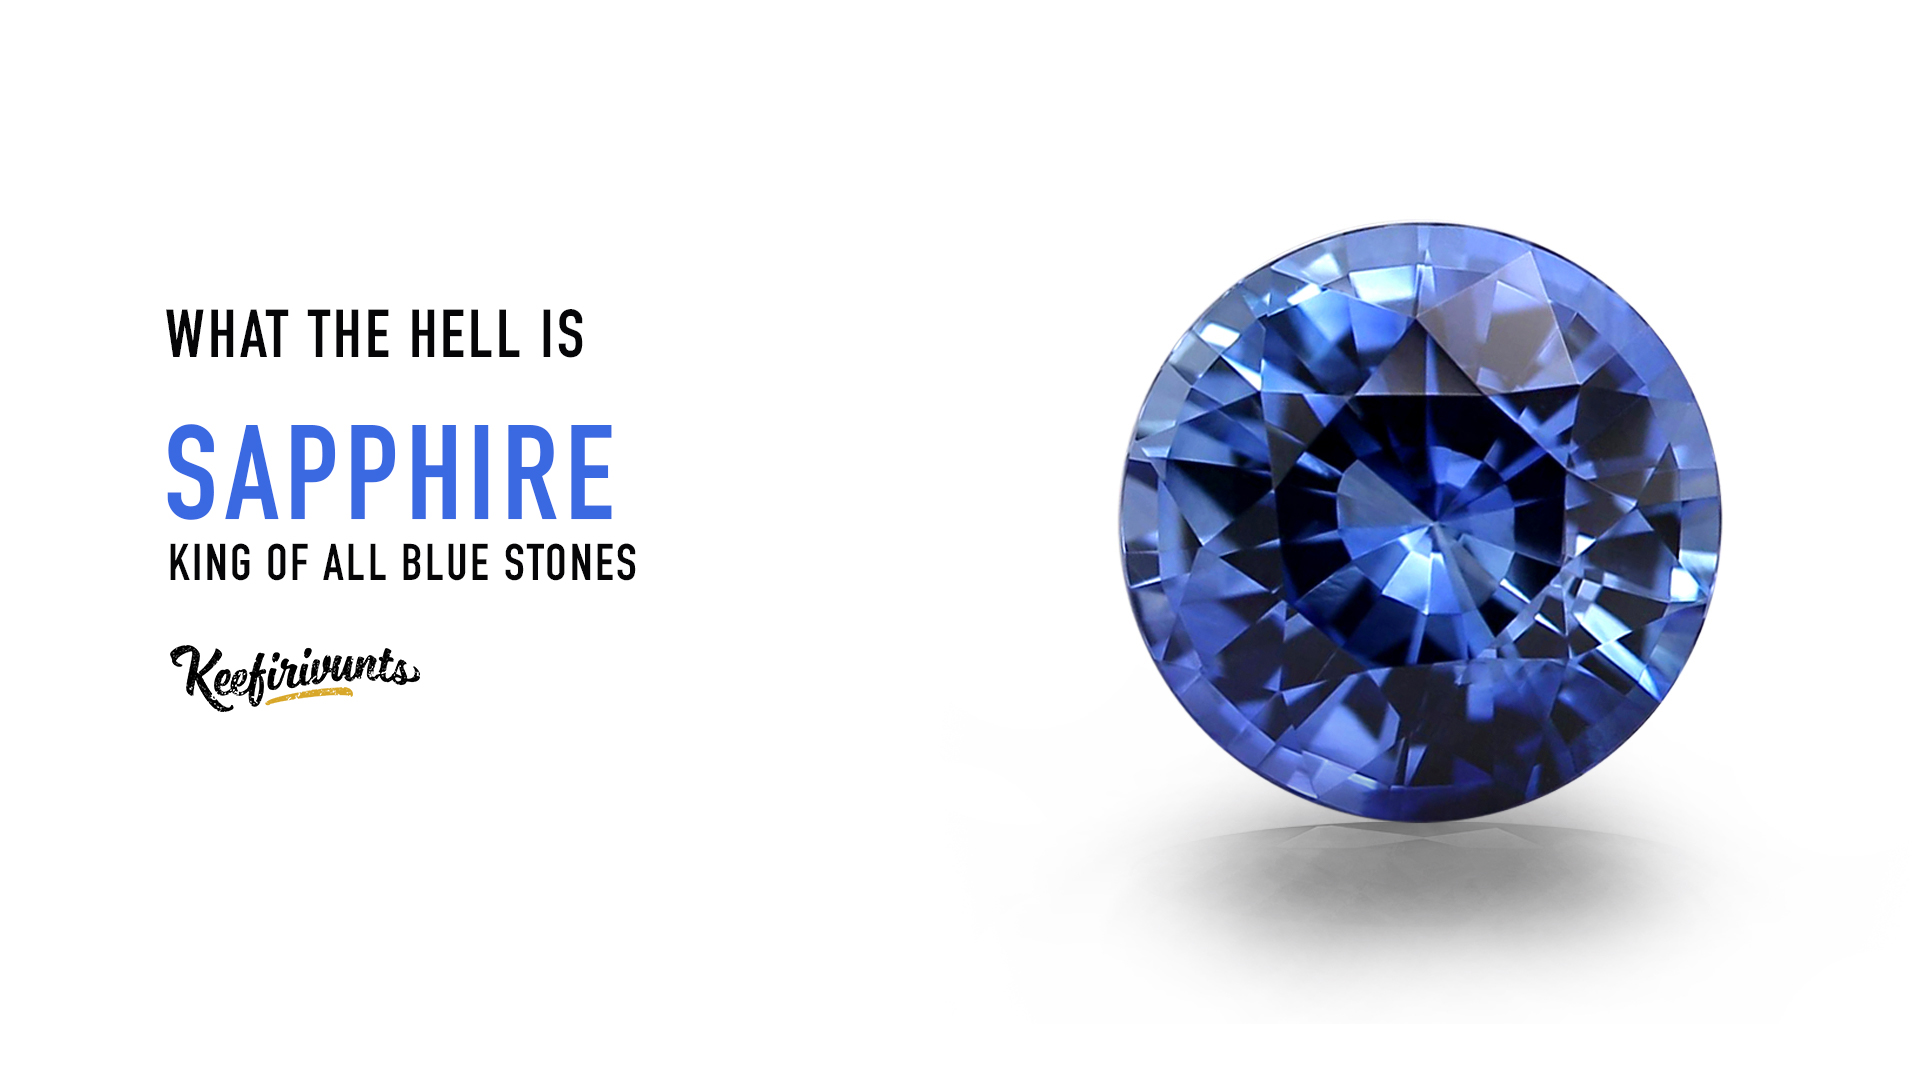 Sapphire – King of All Blue Stones